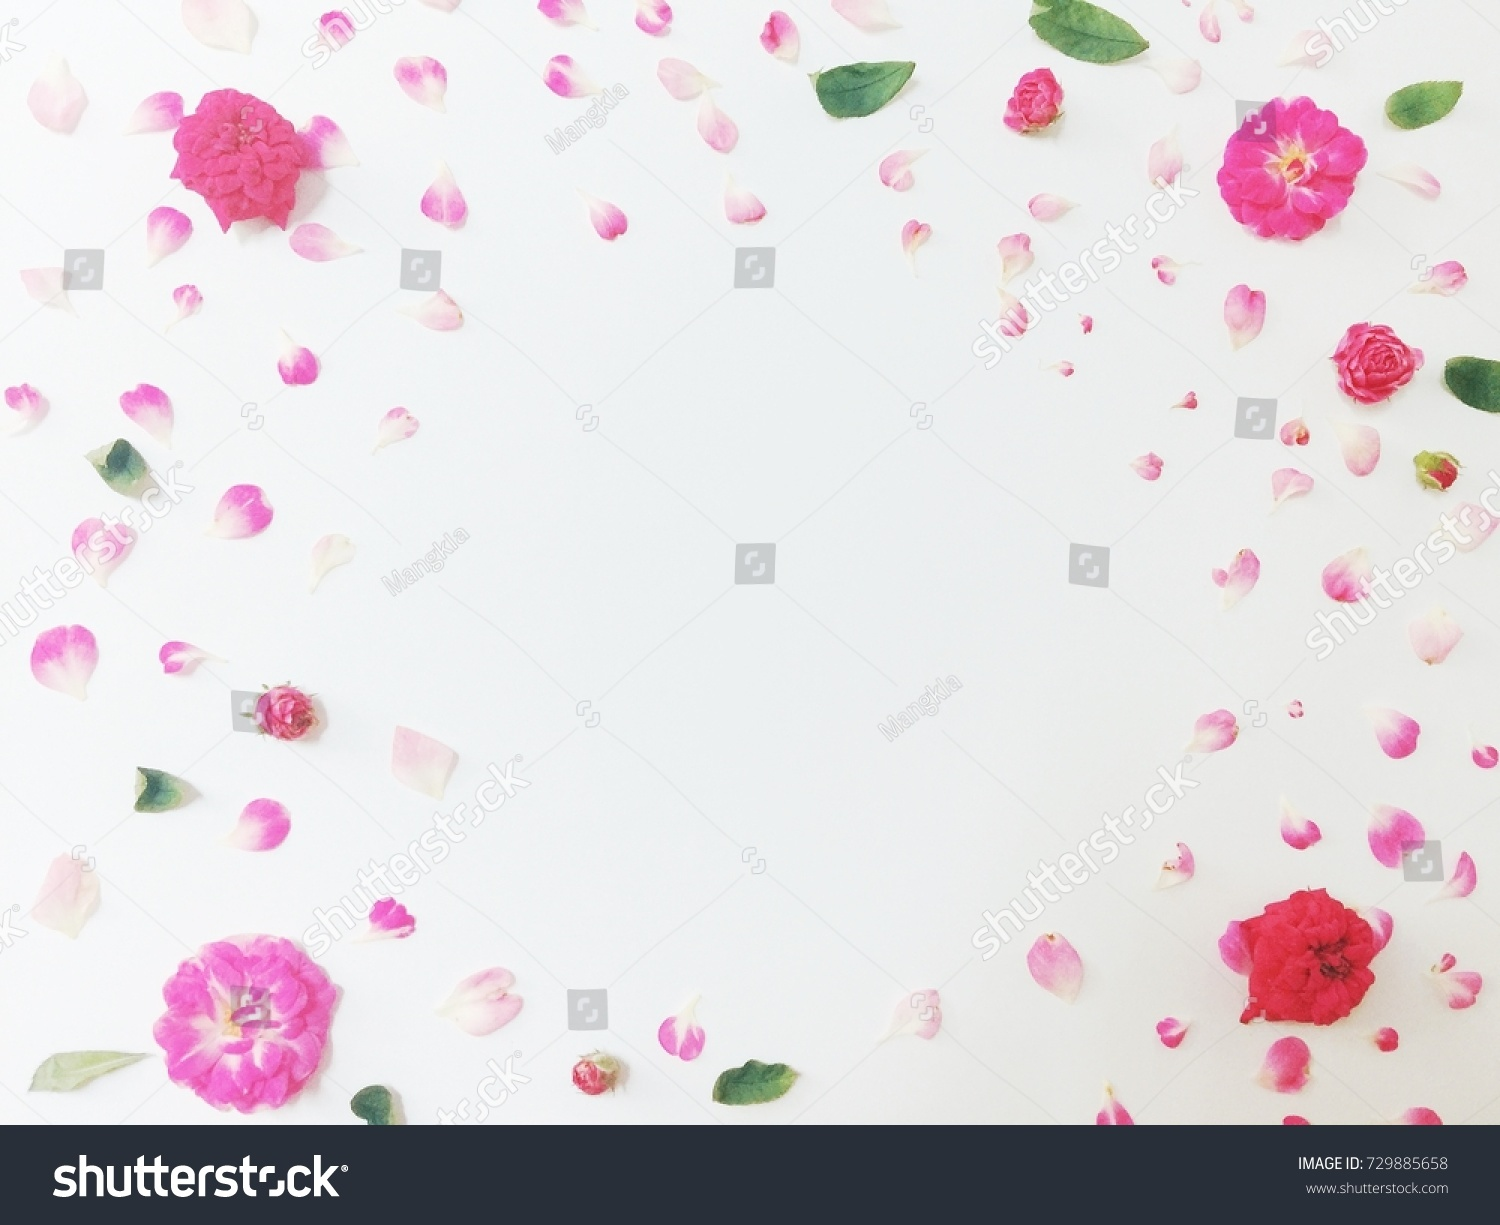 Pretty pink flower background decorative background space for id 729885658 mightylinksfo